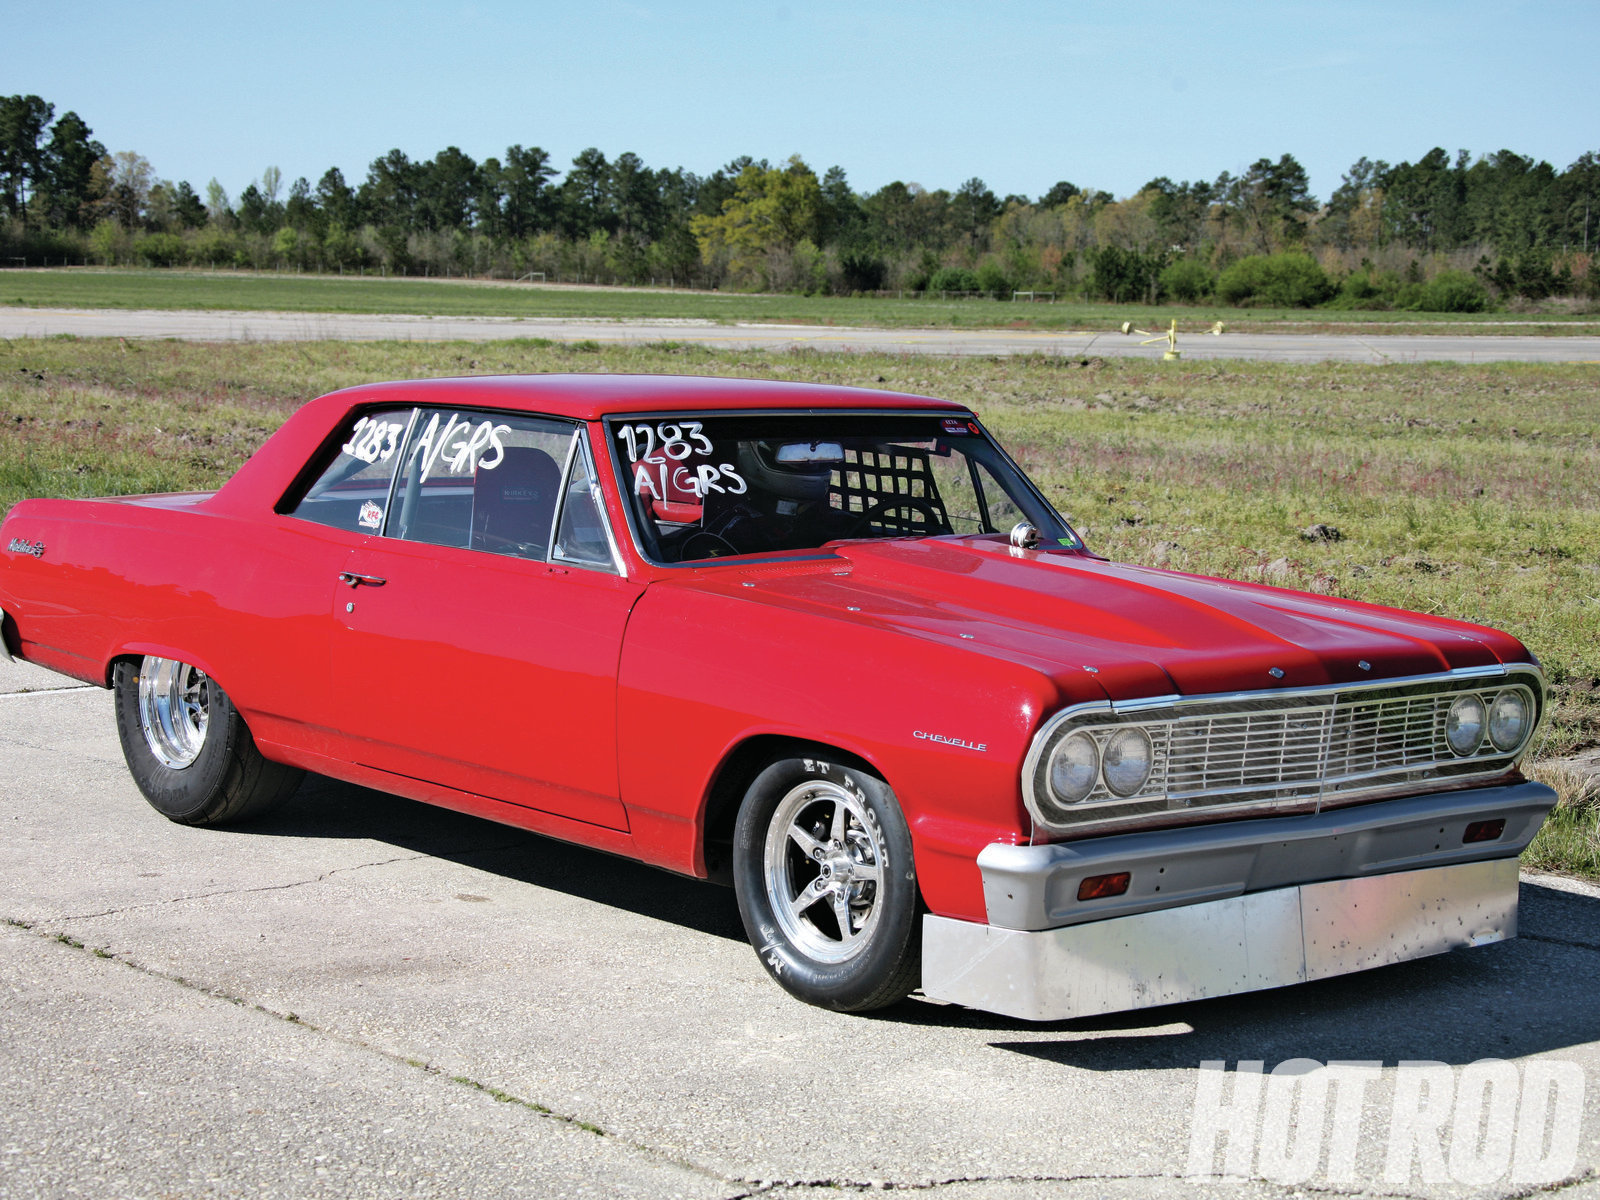 chevrolet malibu hot rod - photo #39